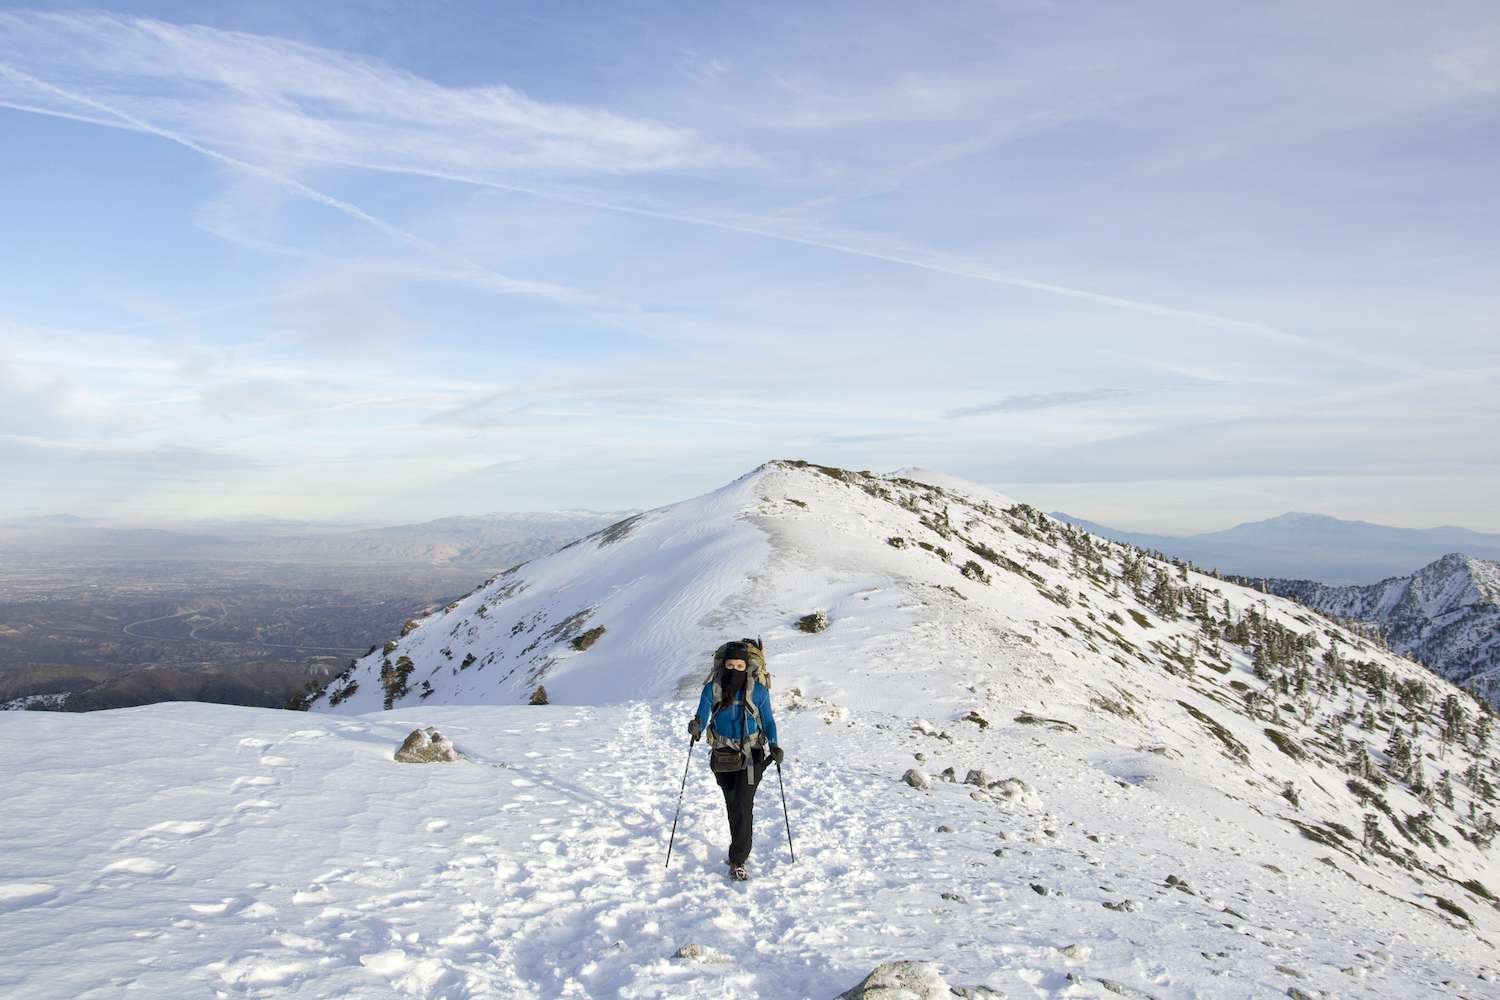 A hiker poses in front of the snow-capped summit of Mount San Antonio.